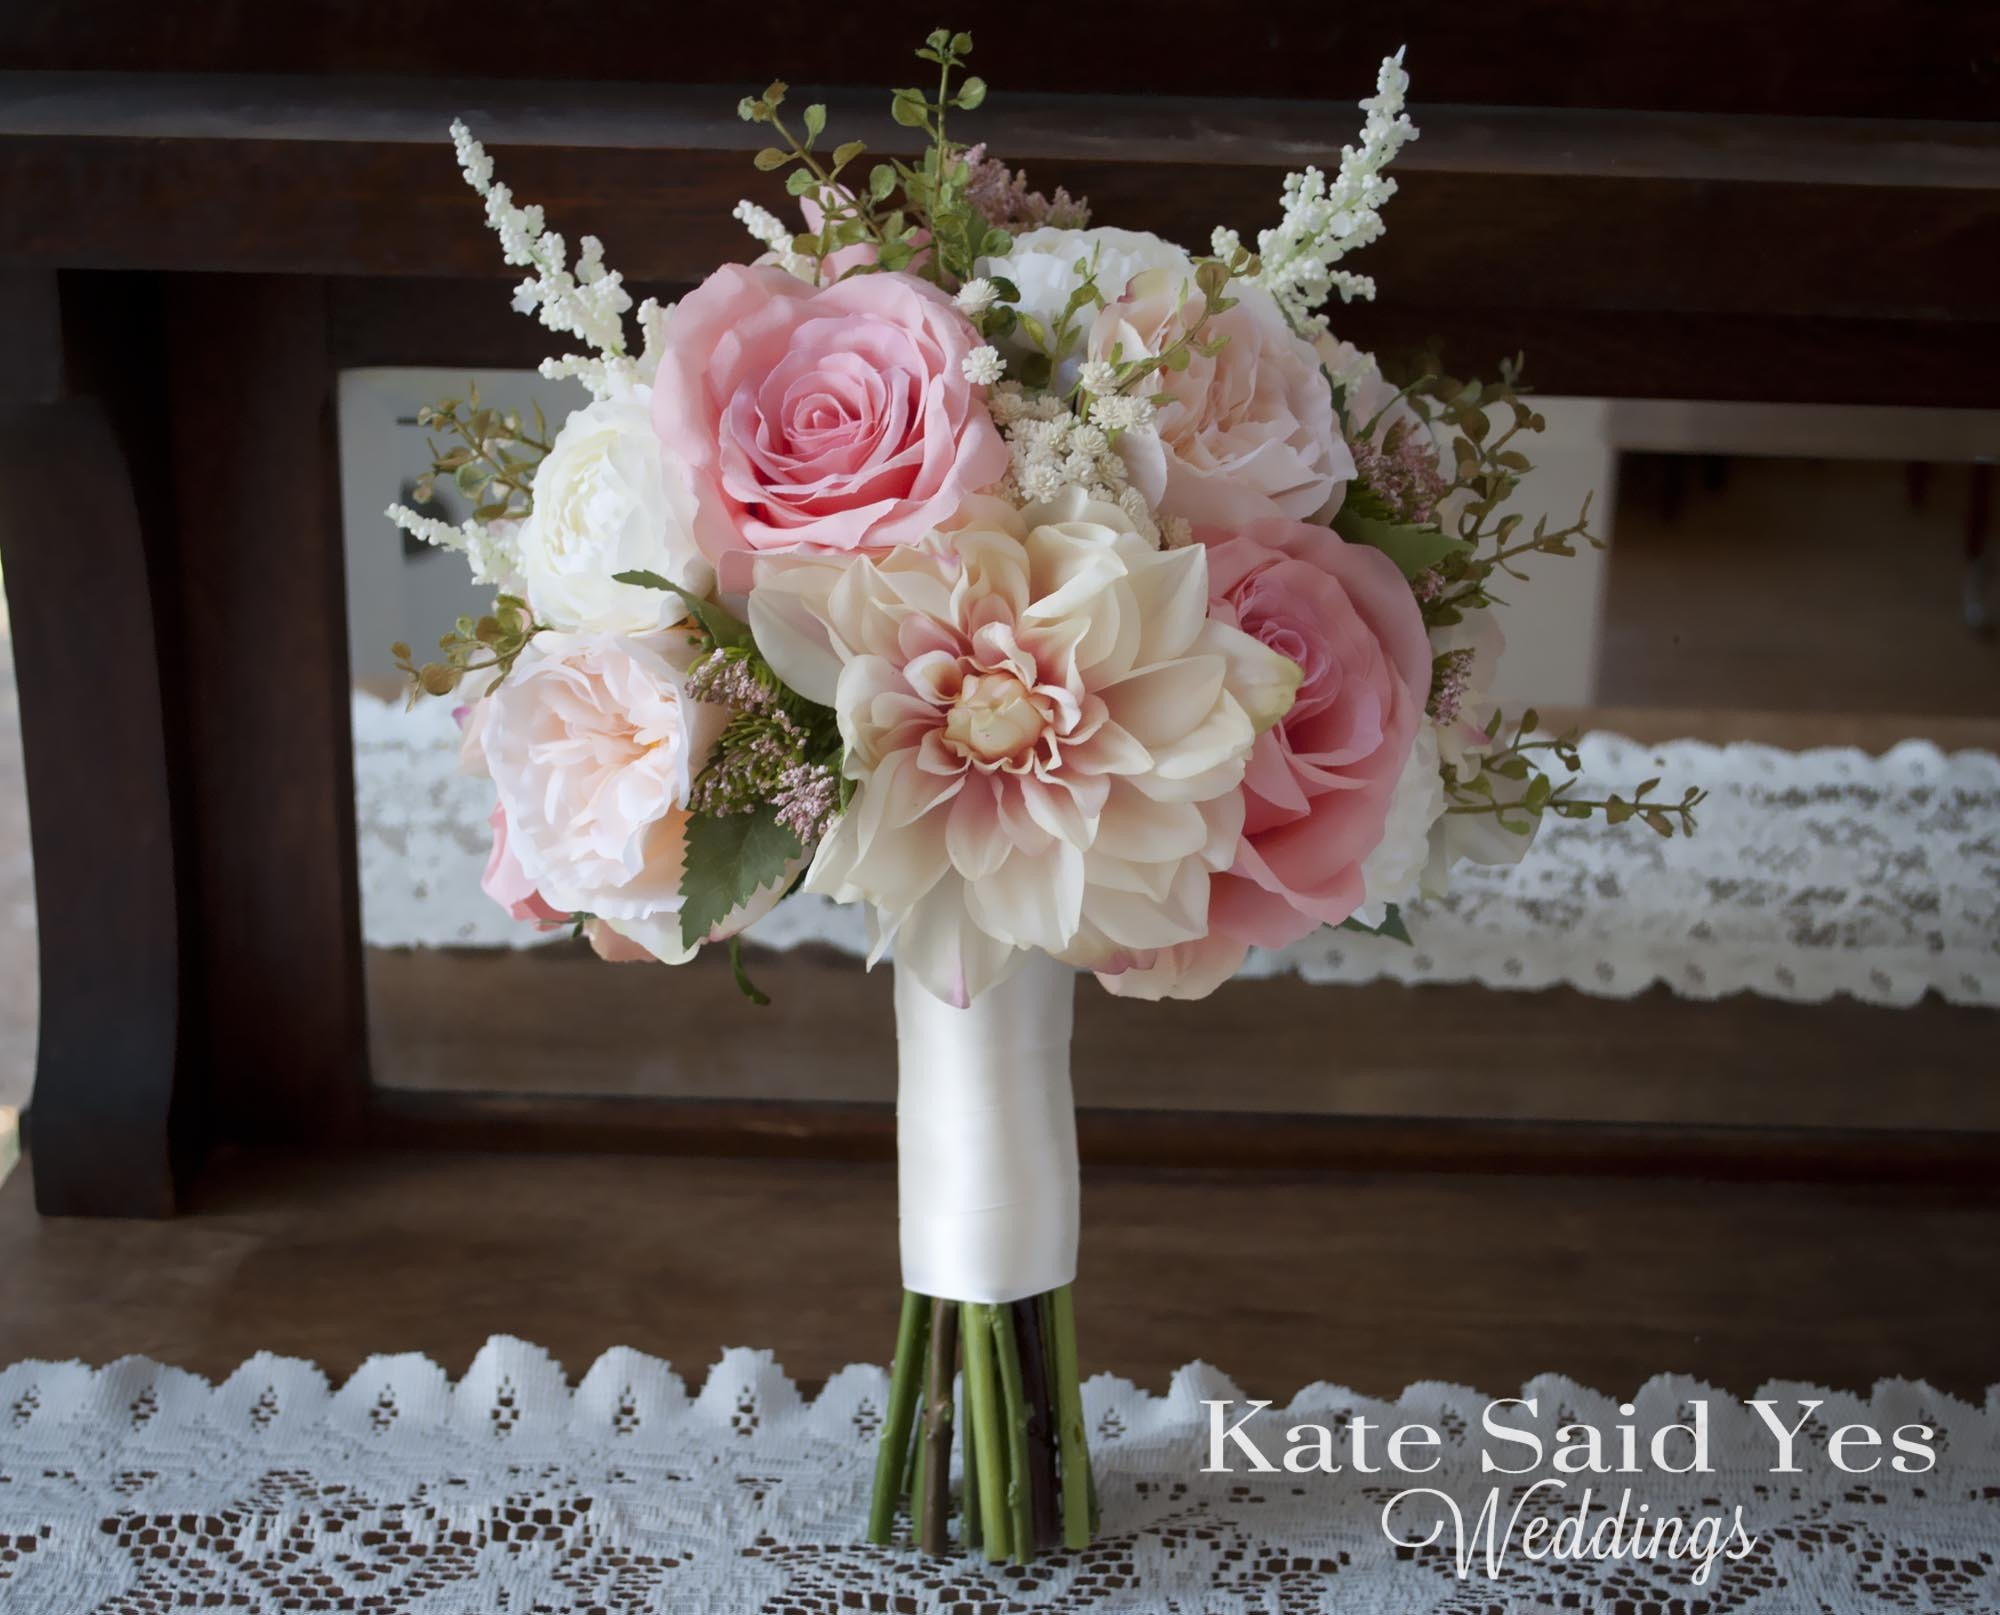 A beautifully romantic bouquet with a garden wedding feel. Blush pink and ivory dahlias, garden roses, and ranunculus are accented with astilbe and greenery. Th